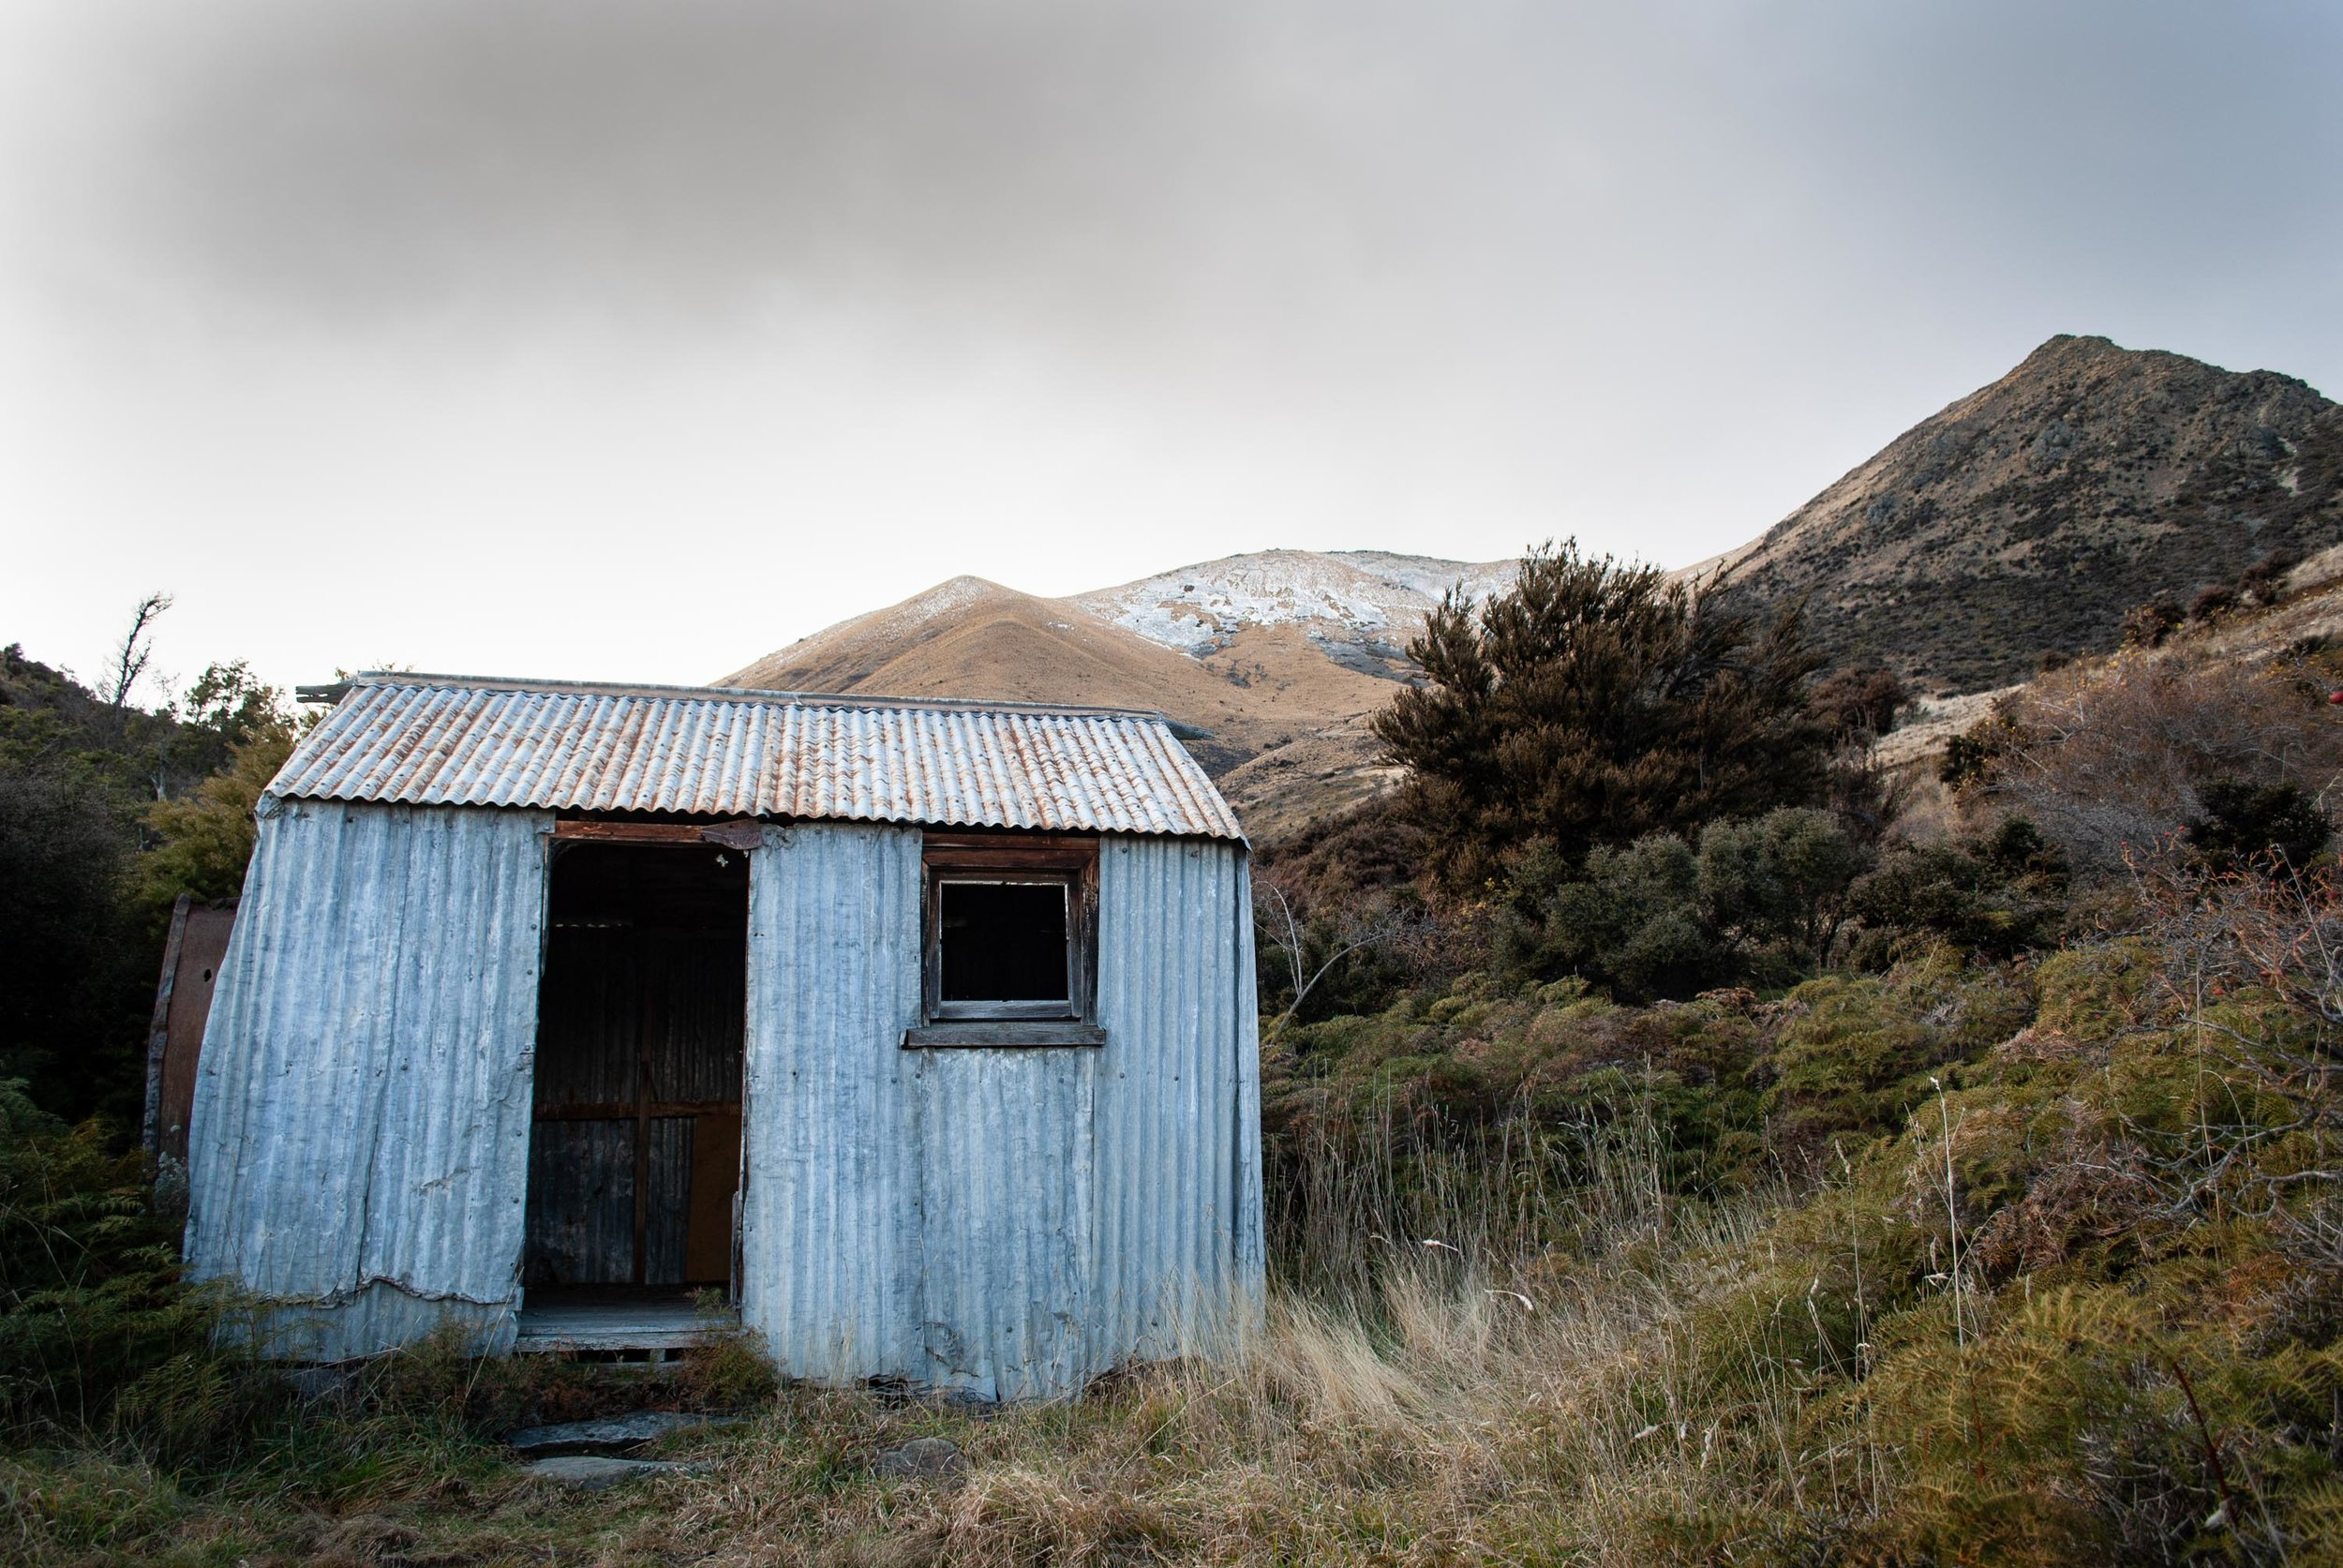 The old Greta Hut on the way to climb the Ben Ohau range shown in the distance.